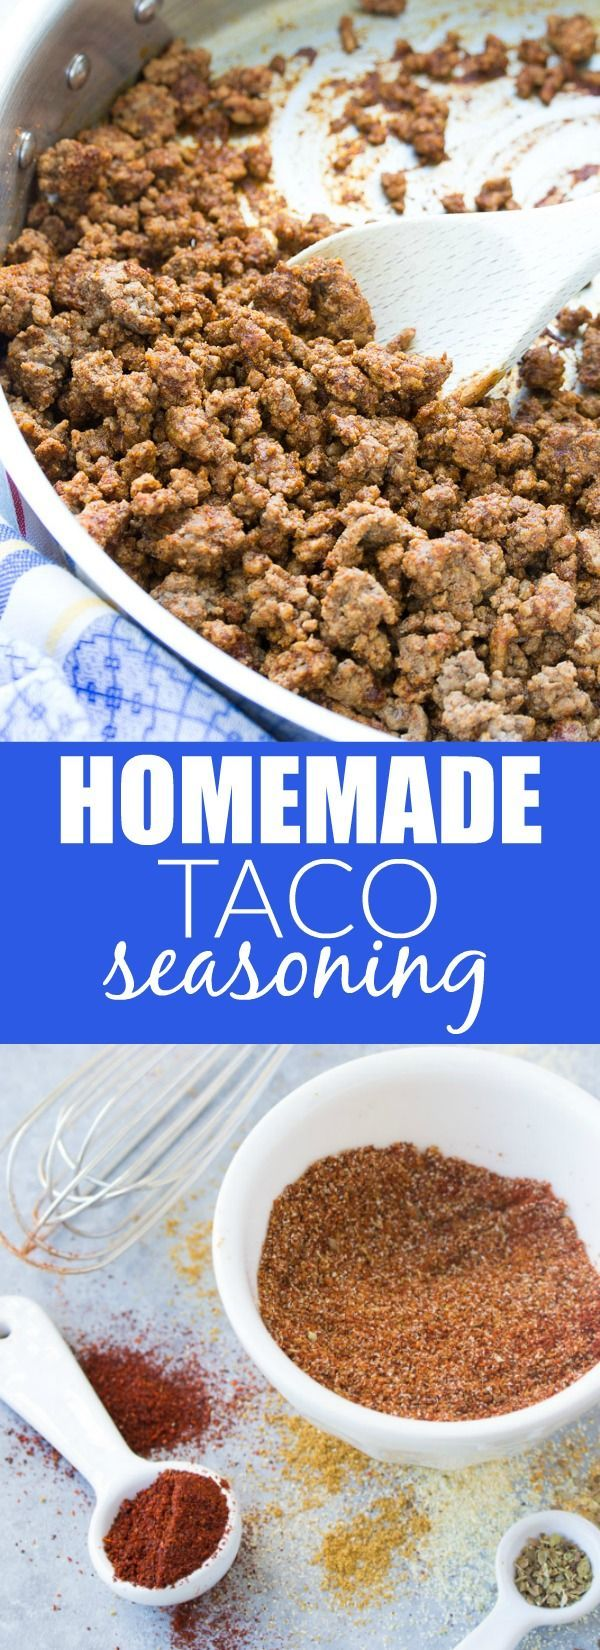 This EASY Homemade Taco Seasoning recipe is healthier and more flavorful than the store-bought packets! Use it in tacos, burritos, soups and more! | www.kristineskitchenblog.com